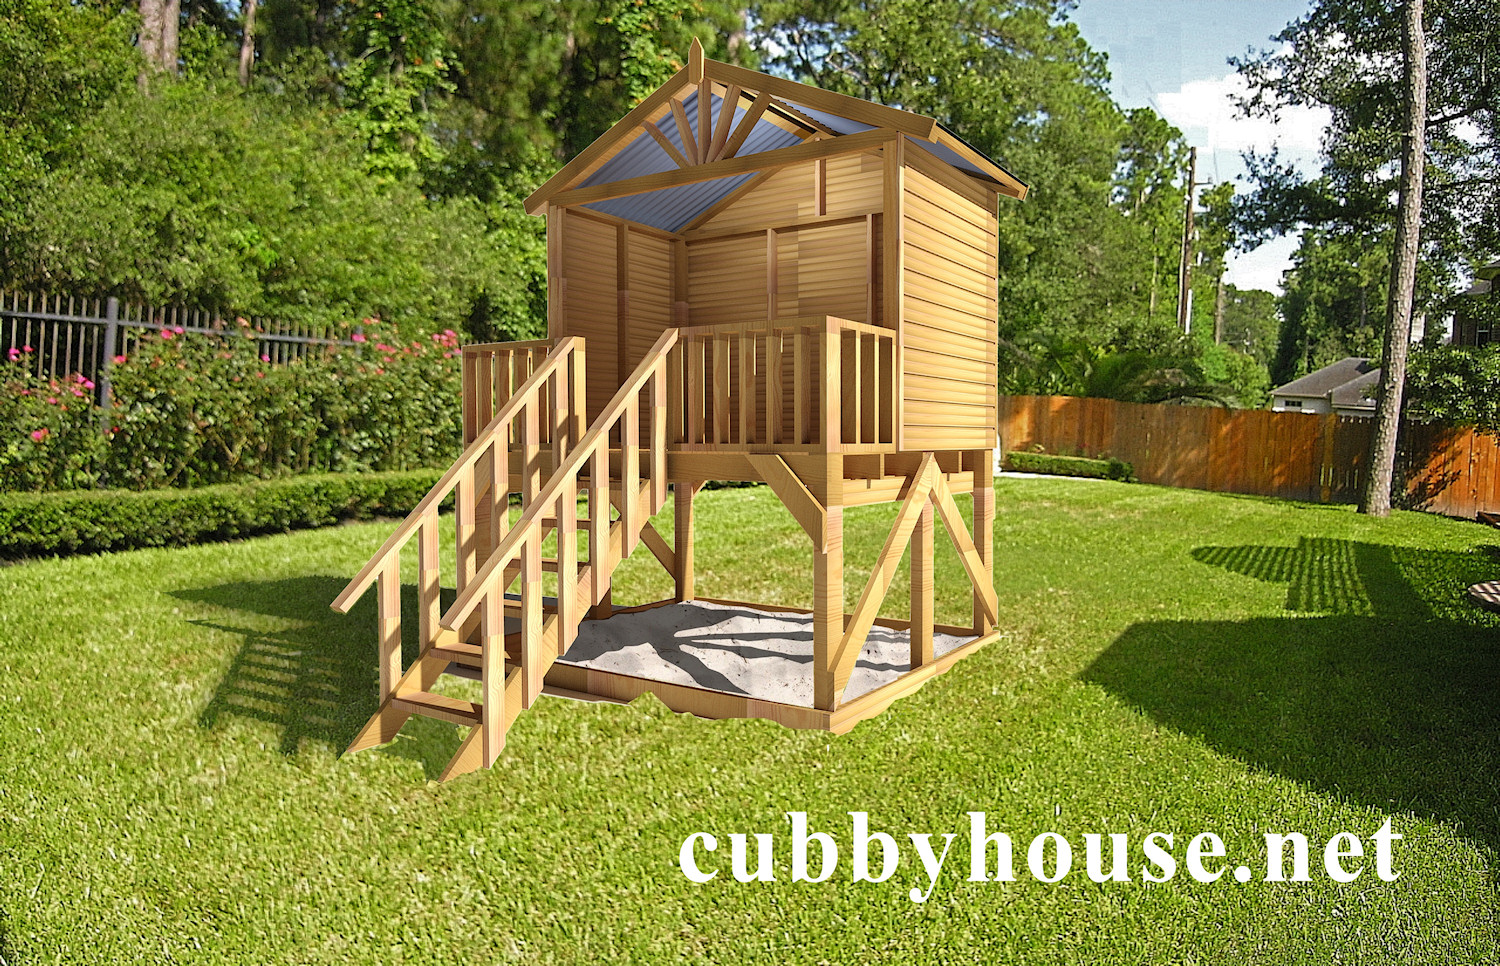 red cloud cubby house, cubby house australia, cubby houses for sale, cubby houses